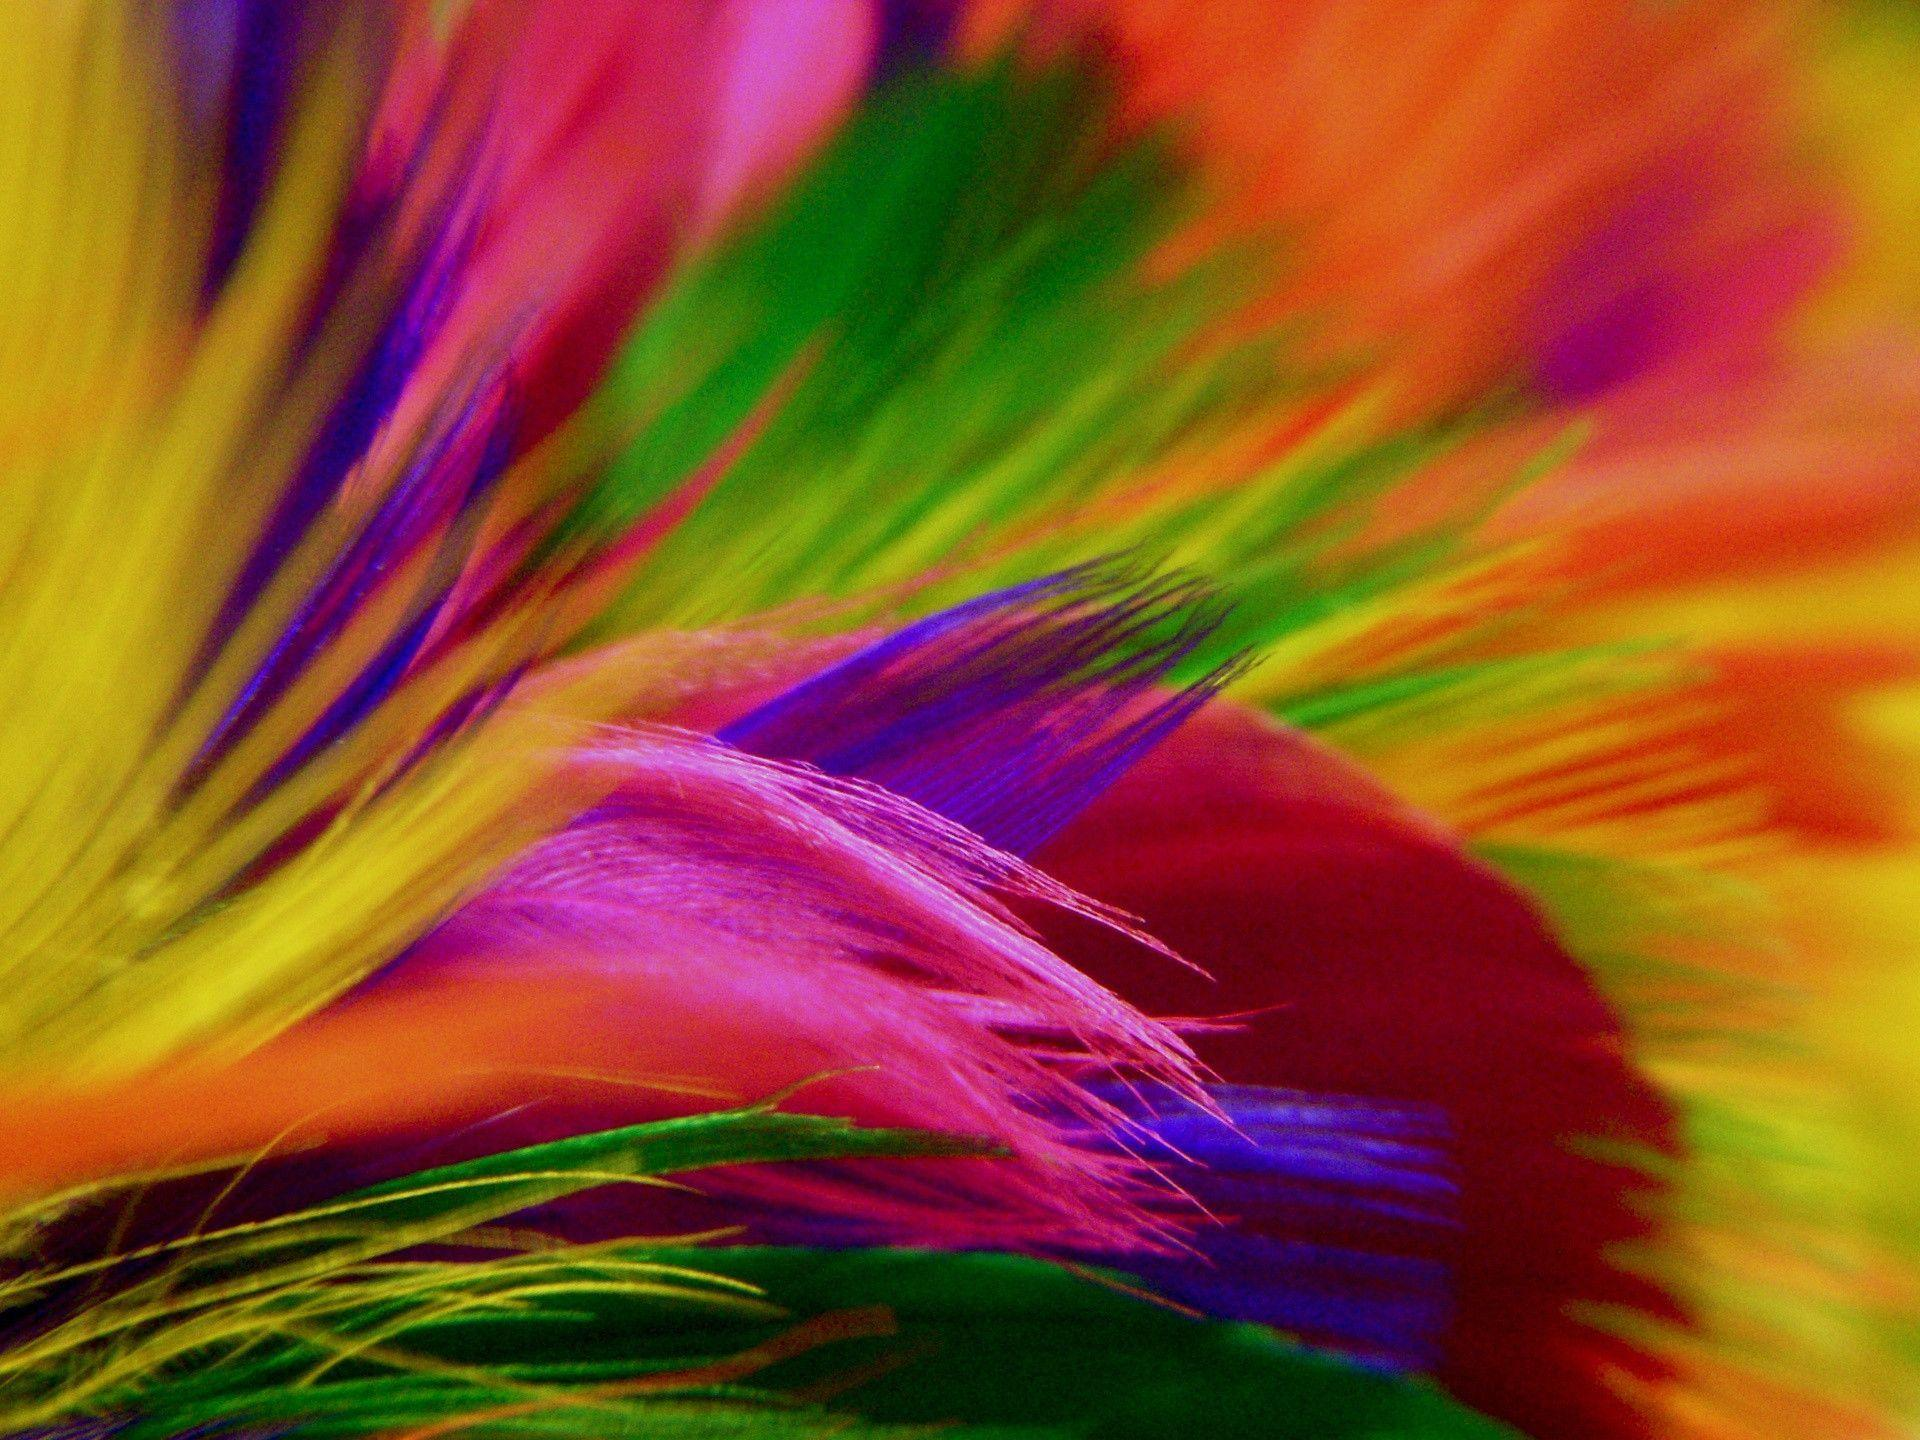 Hd Colorful Backgrounds: Colorful HD Backgrounds